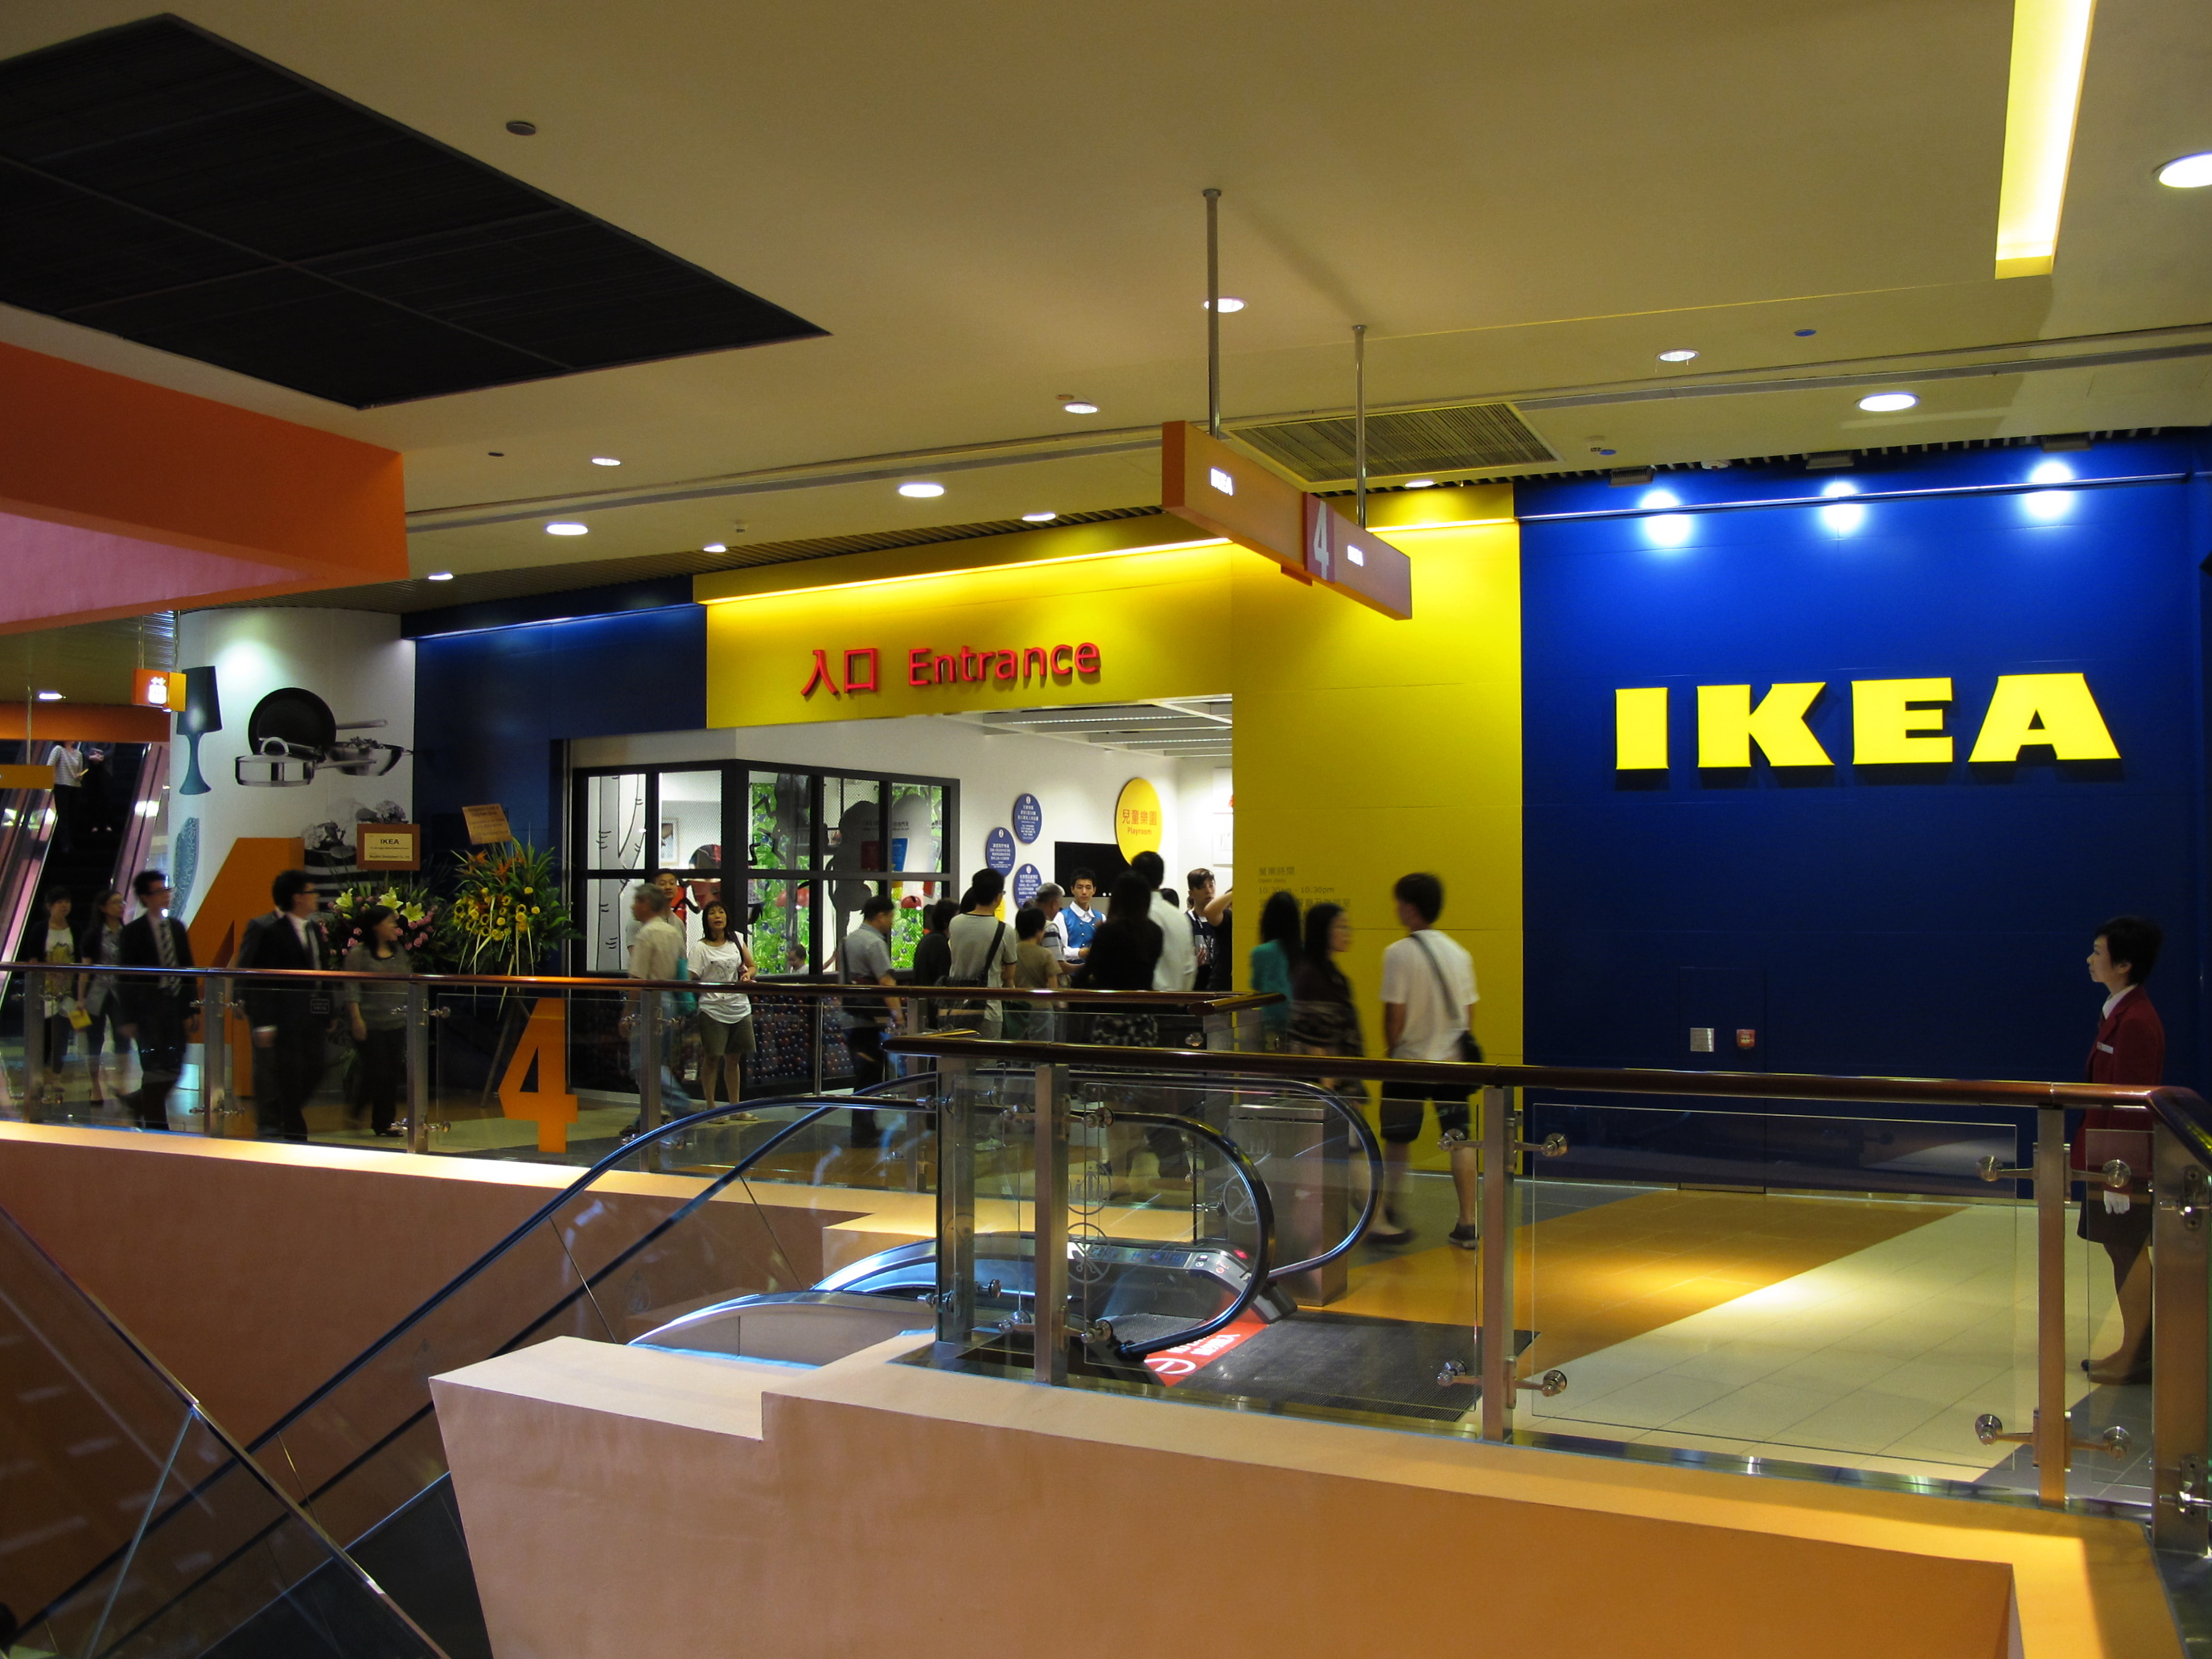 Interior Ikeaikea filehk ikea kowloon bay store 201006 jpg wikimedia commons jpg